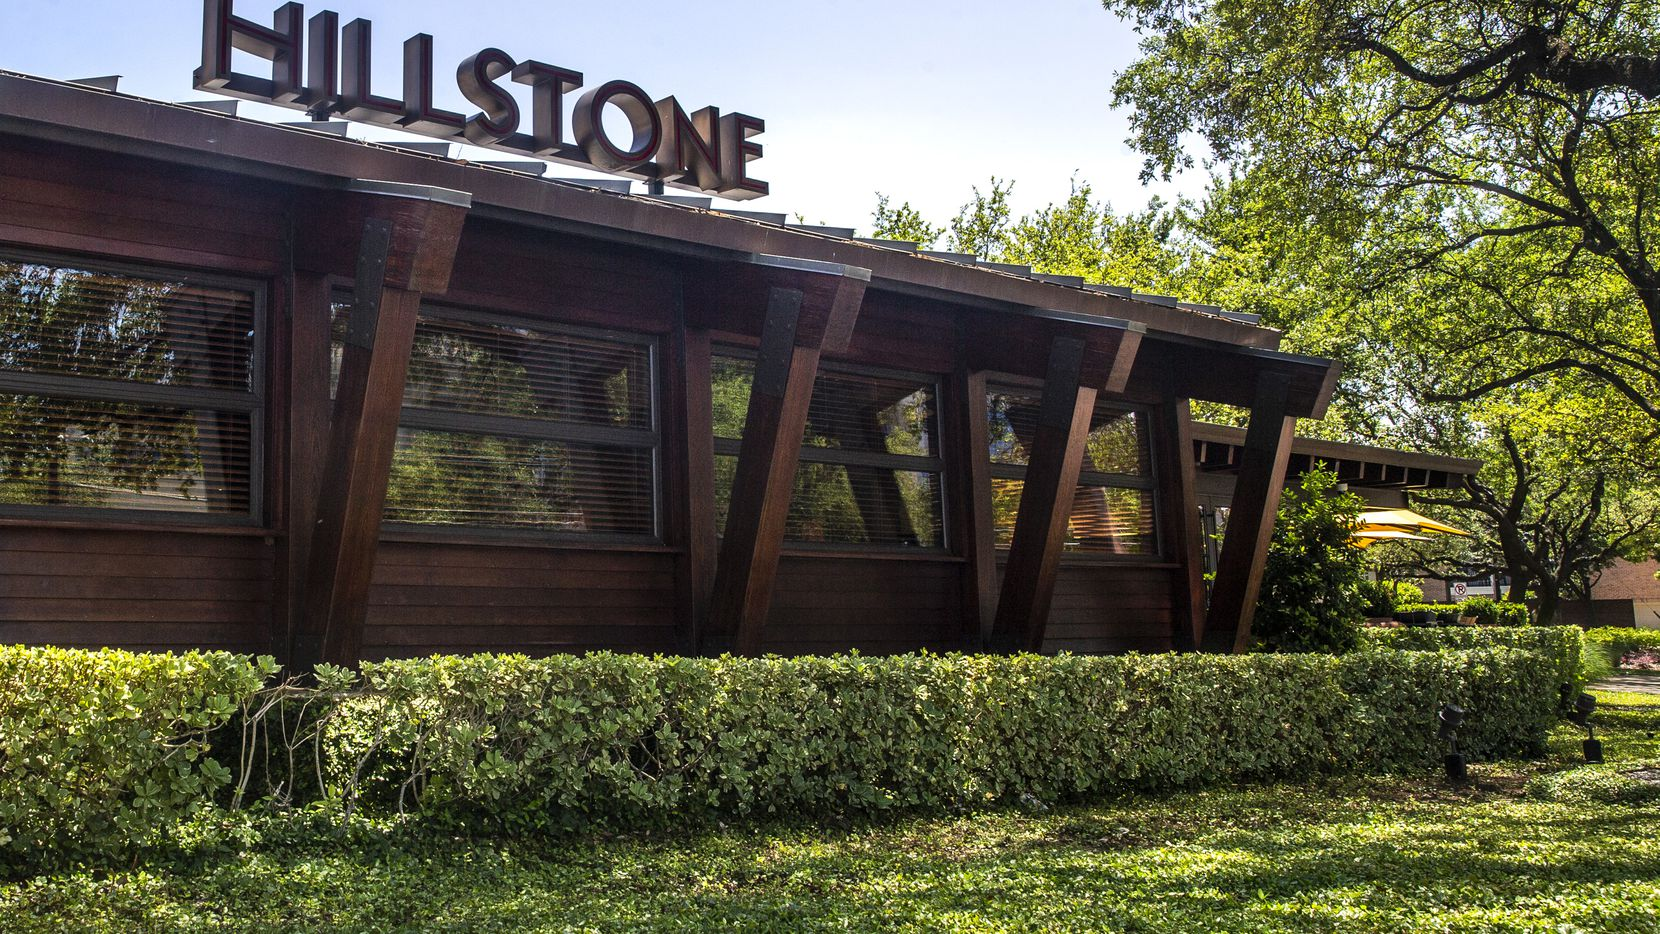 The Hillstone Restaurant Group has been accused of prohibitings employees from wearing protective equipment to guard against COVID-19.